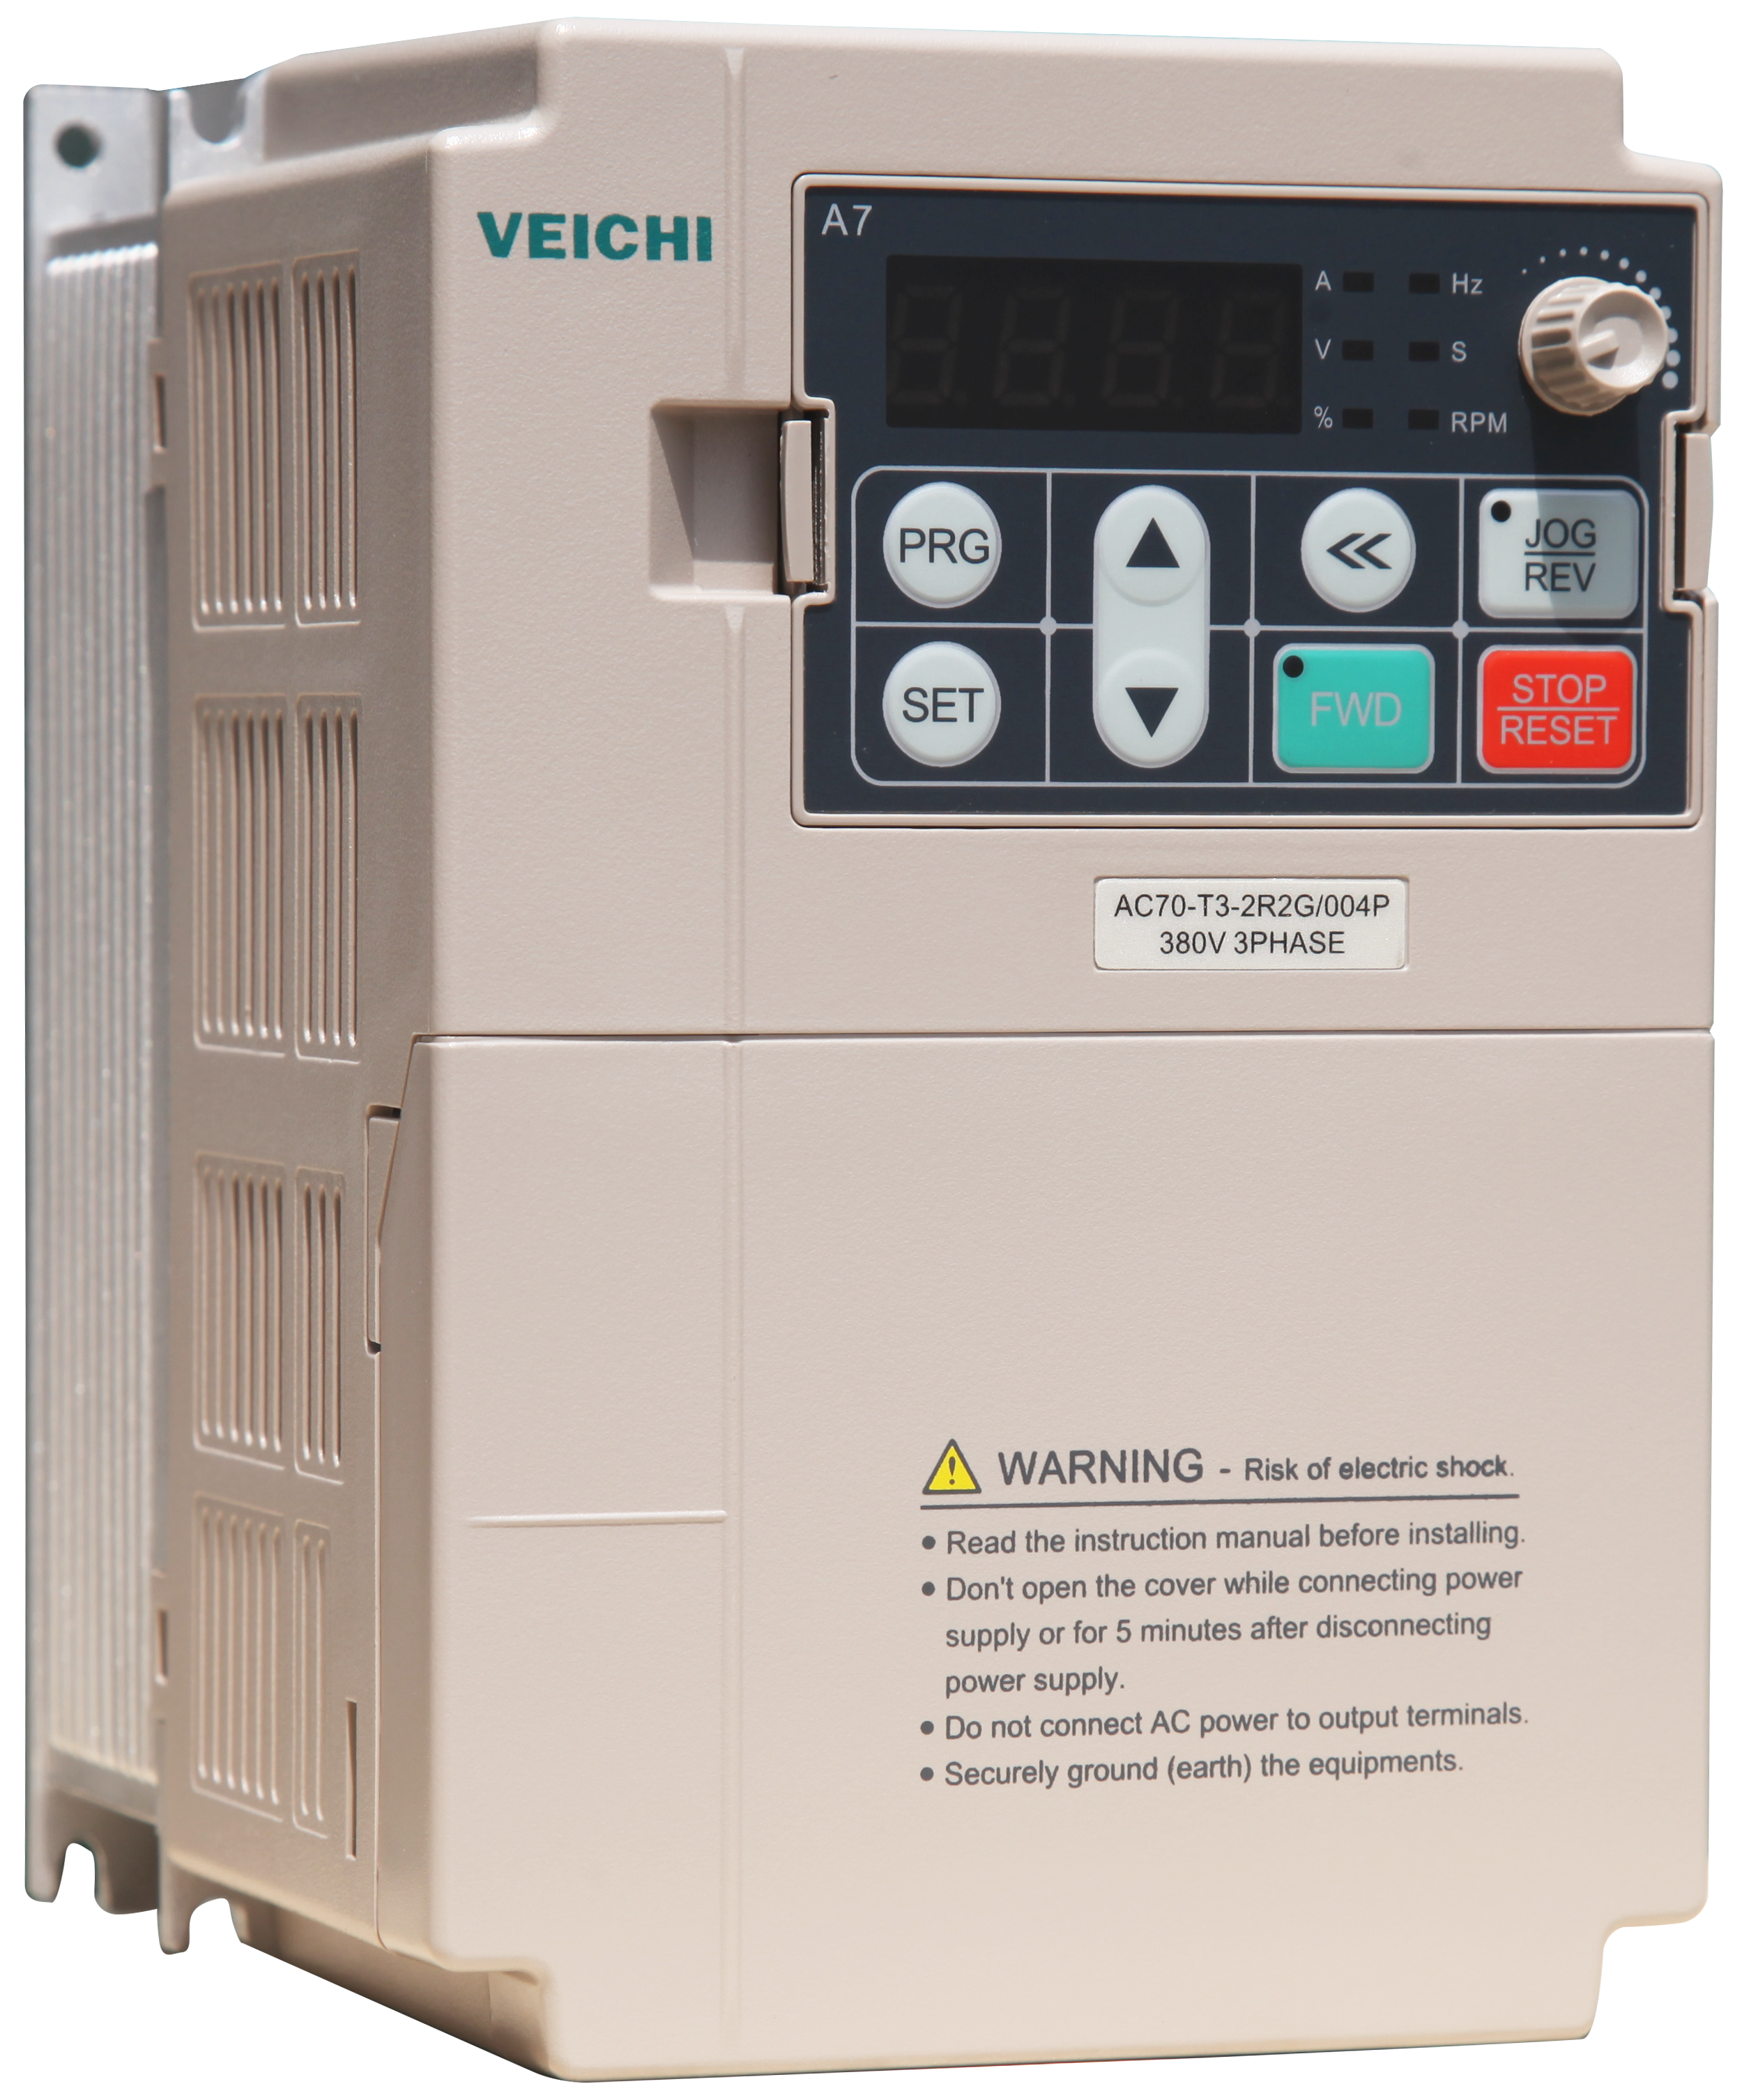 hight resolution of electrical engineering variables veichi ac70 variable frequency drive stable performance and high quality more details http